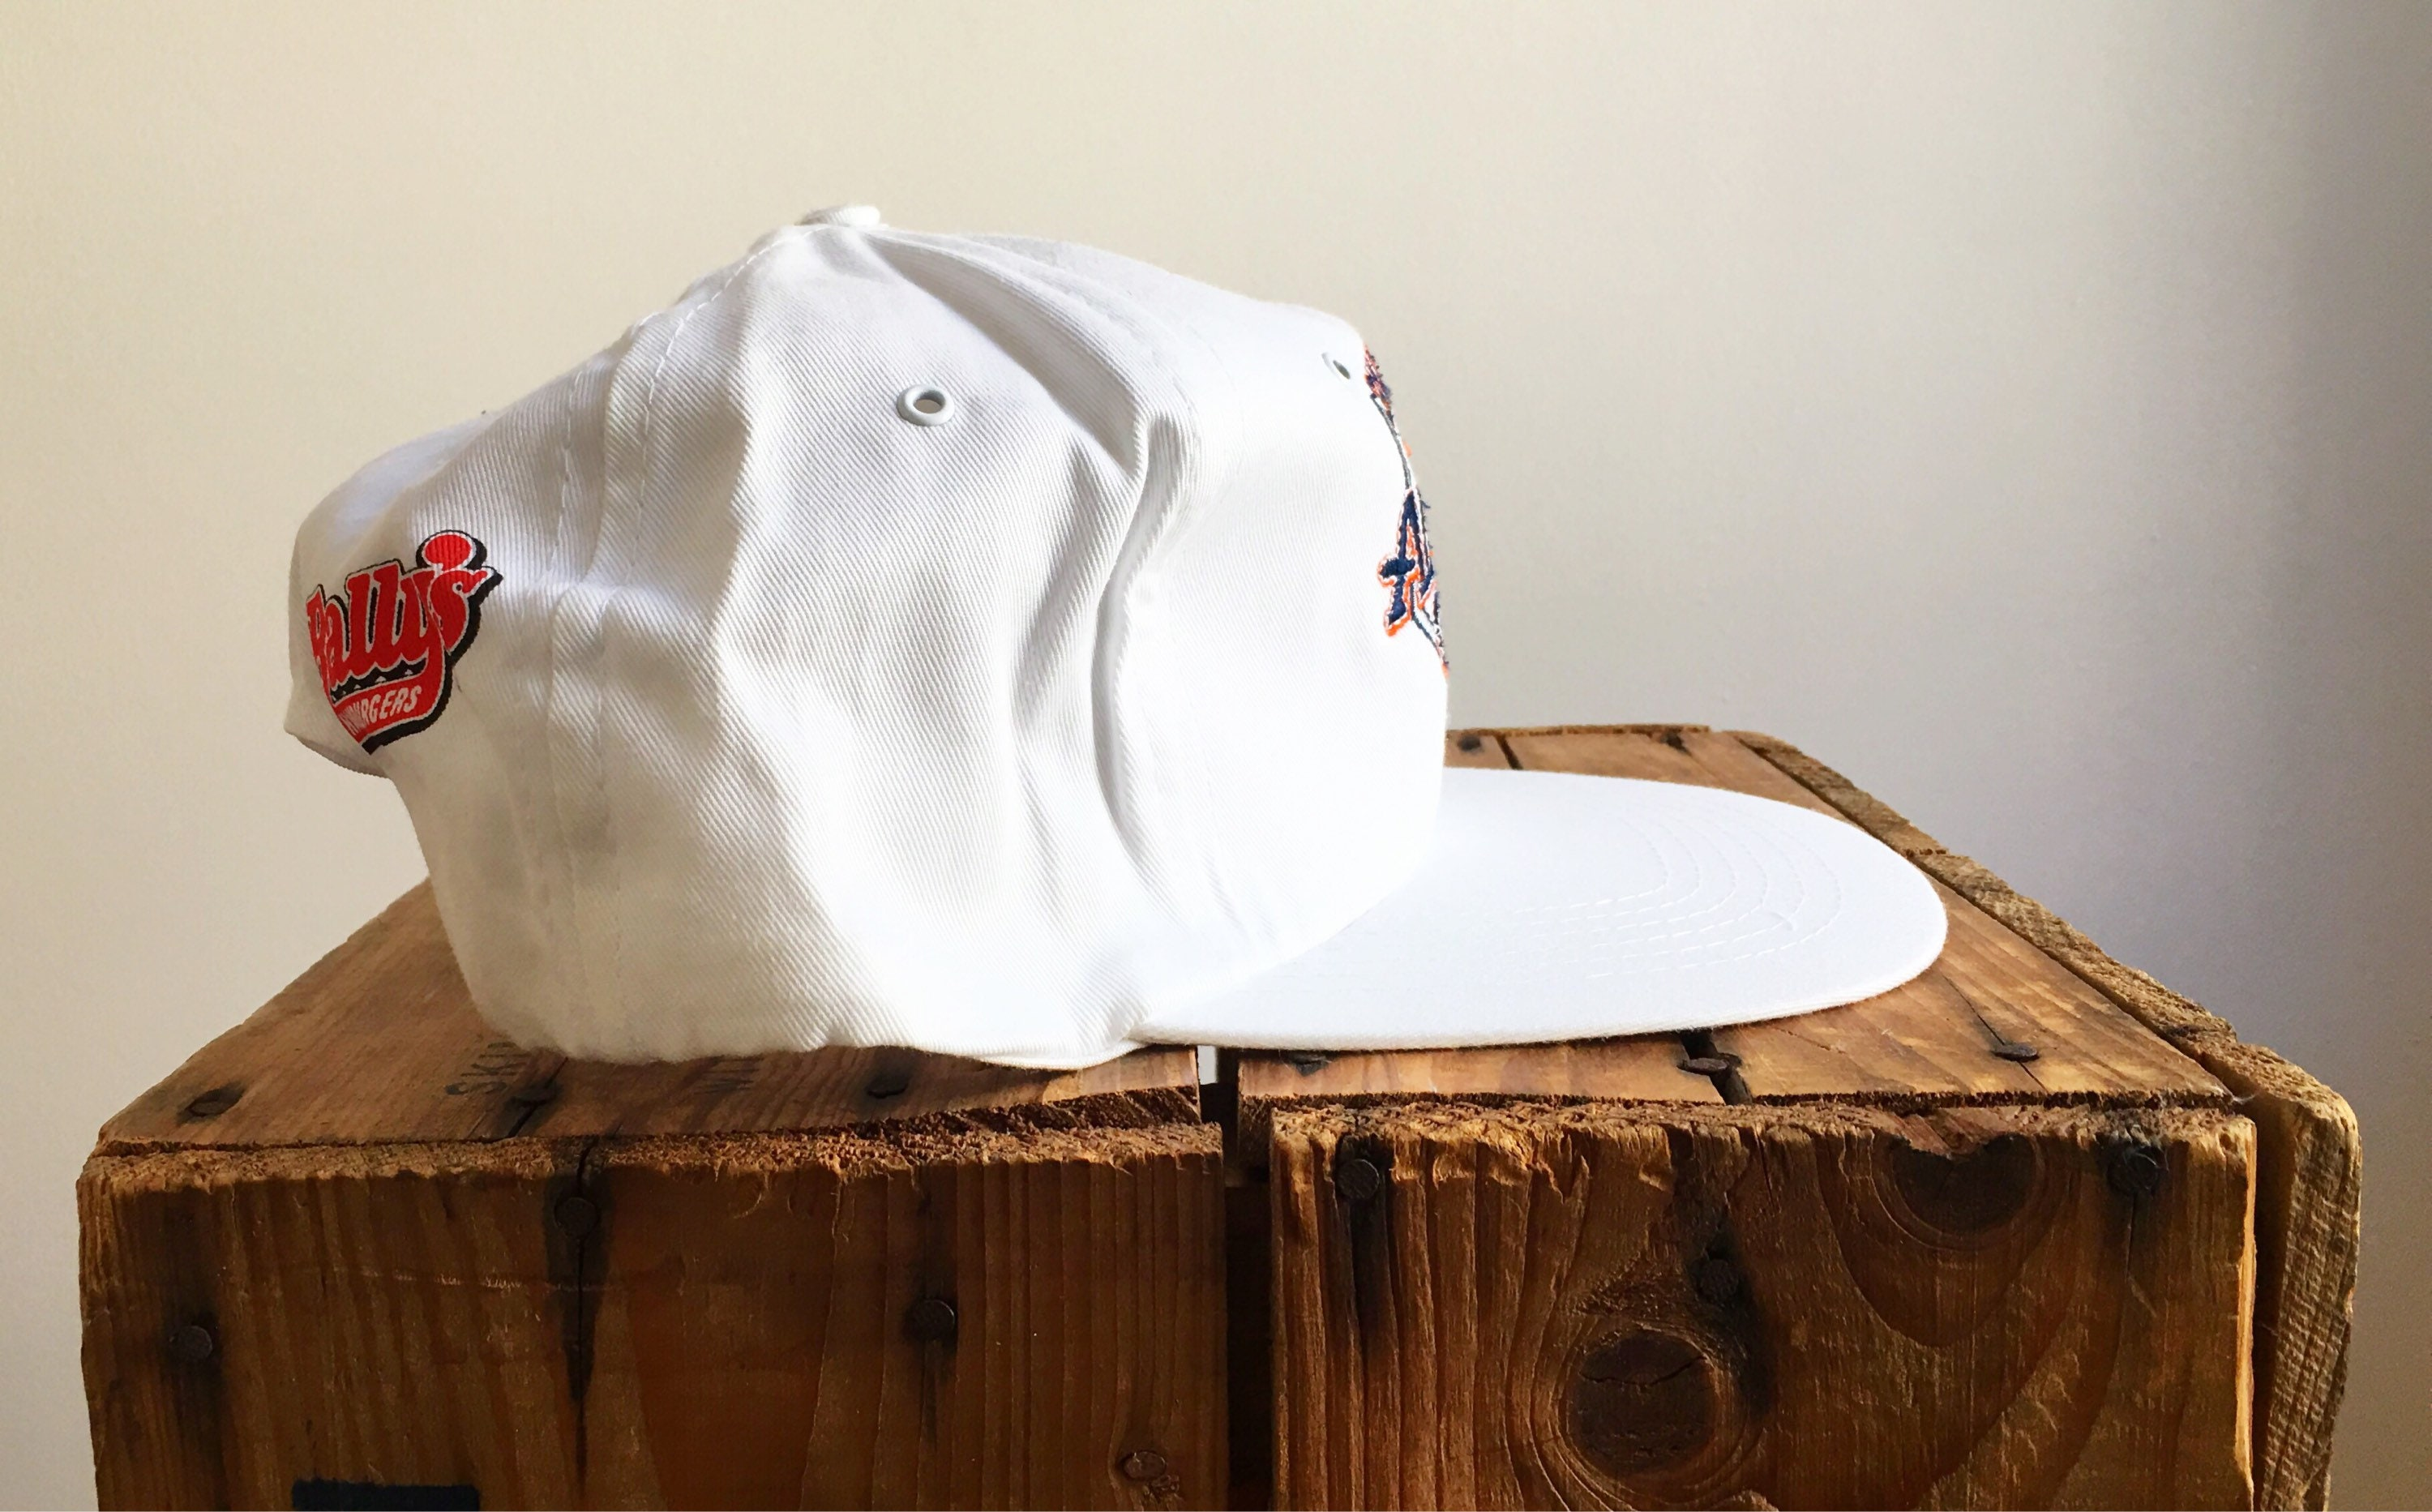 newest collection 7d7f9 7af09 ... new era white blue 2018 mlb all star game 39thirty flex hat ee5a5  fbee2  czech 90s snapback hat san diego padres vintage 90s padres snapback hat  all ...